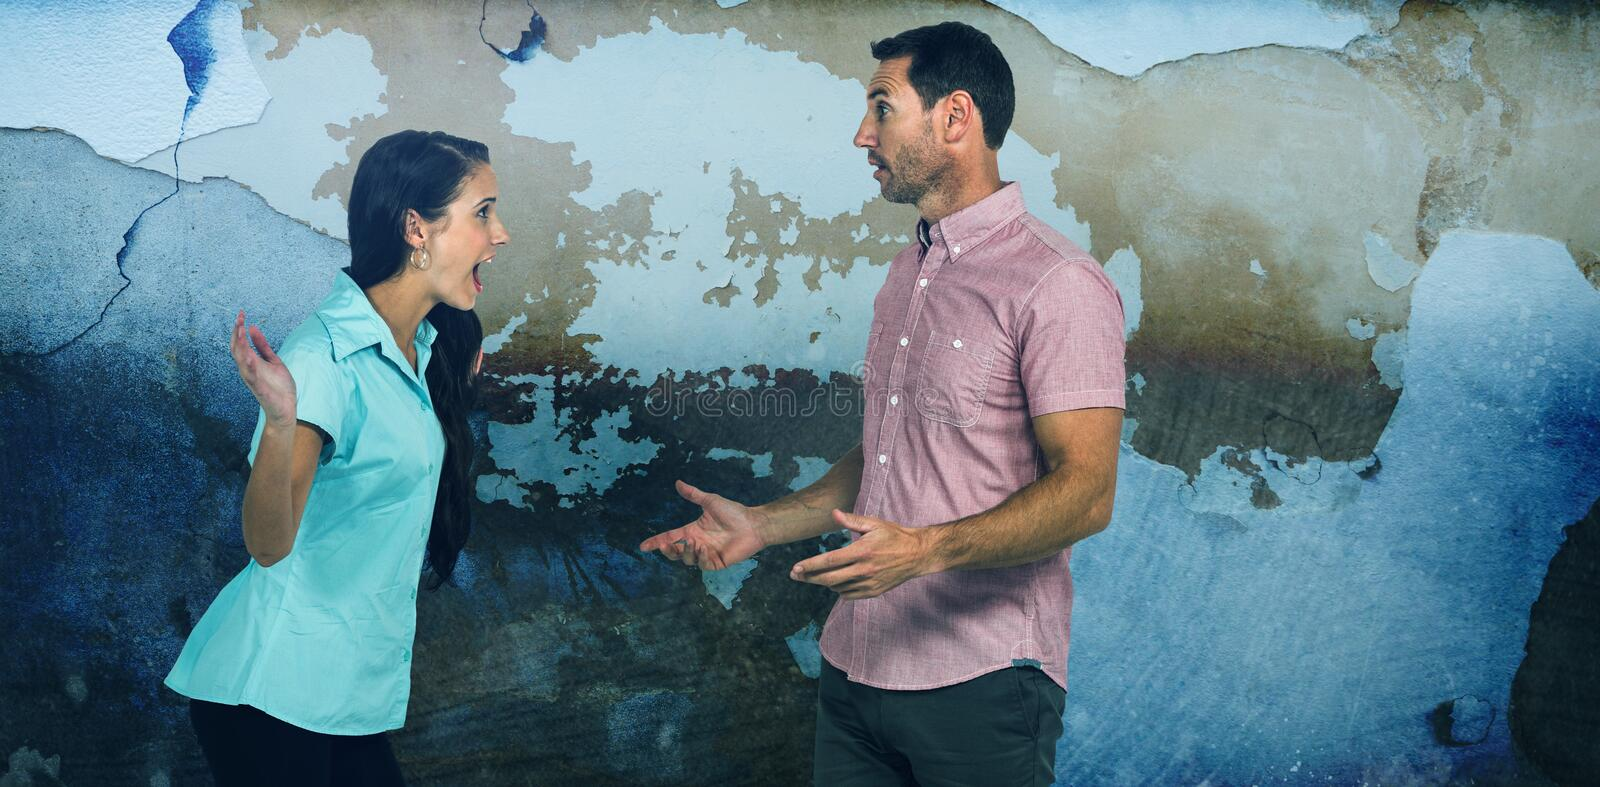 Composite image of woman shouting on man while fighting stock image